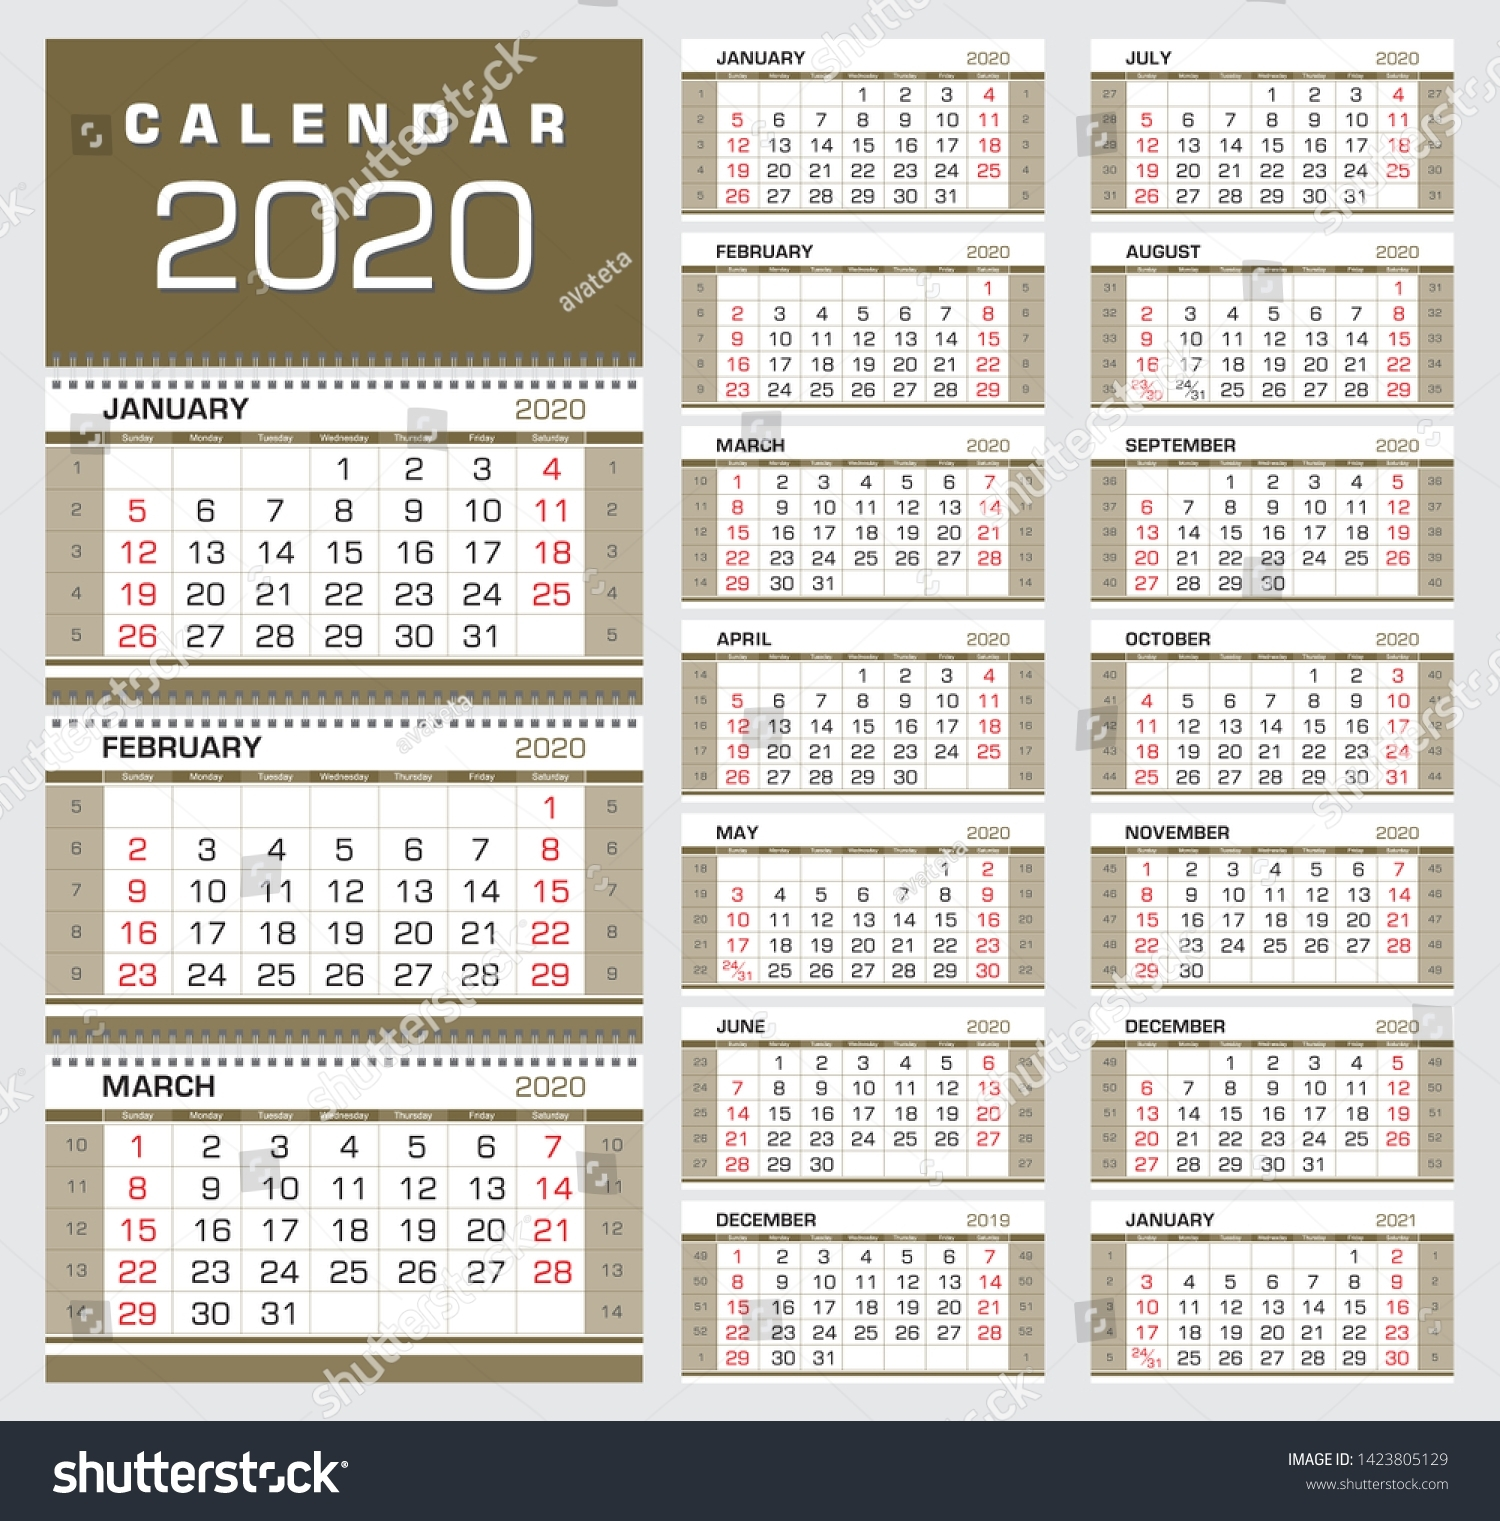 Gold Wall Quarter Calendar 2020 Week Stock Image | Download Now